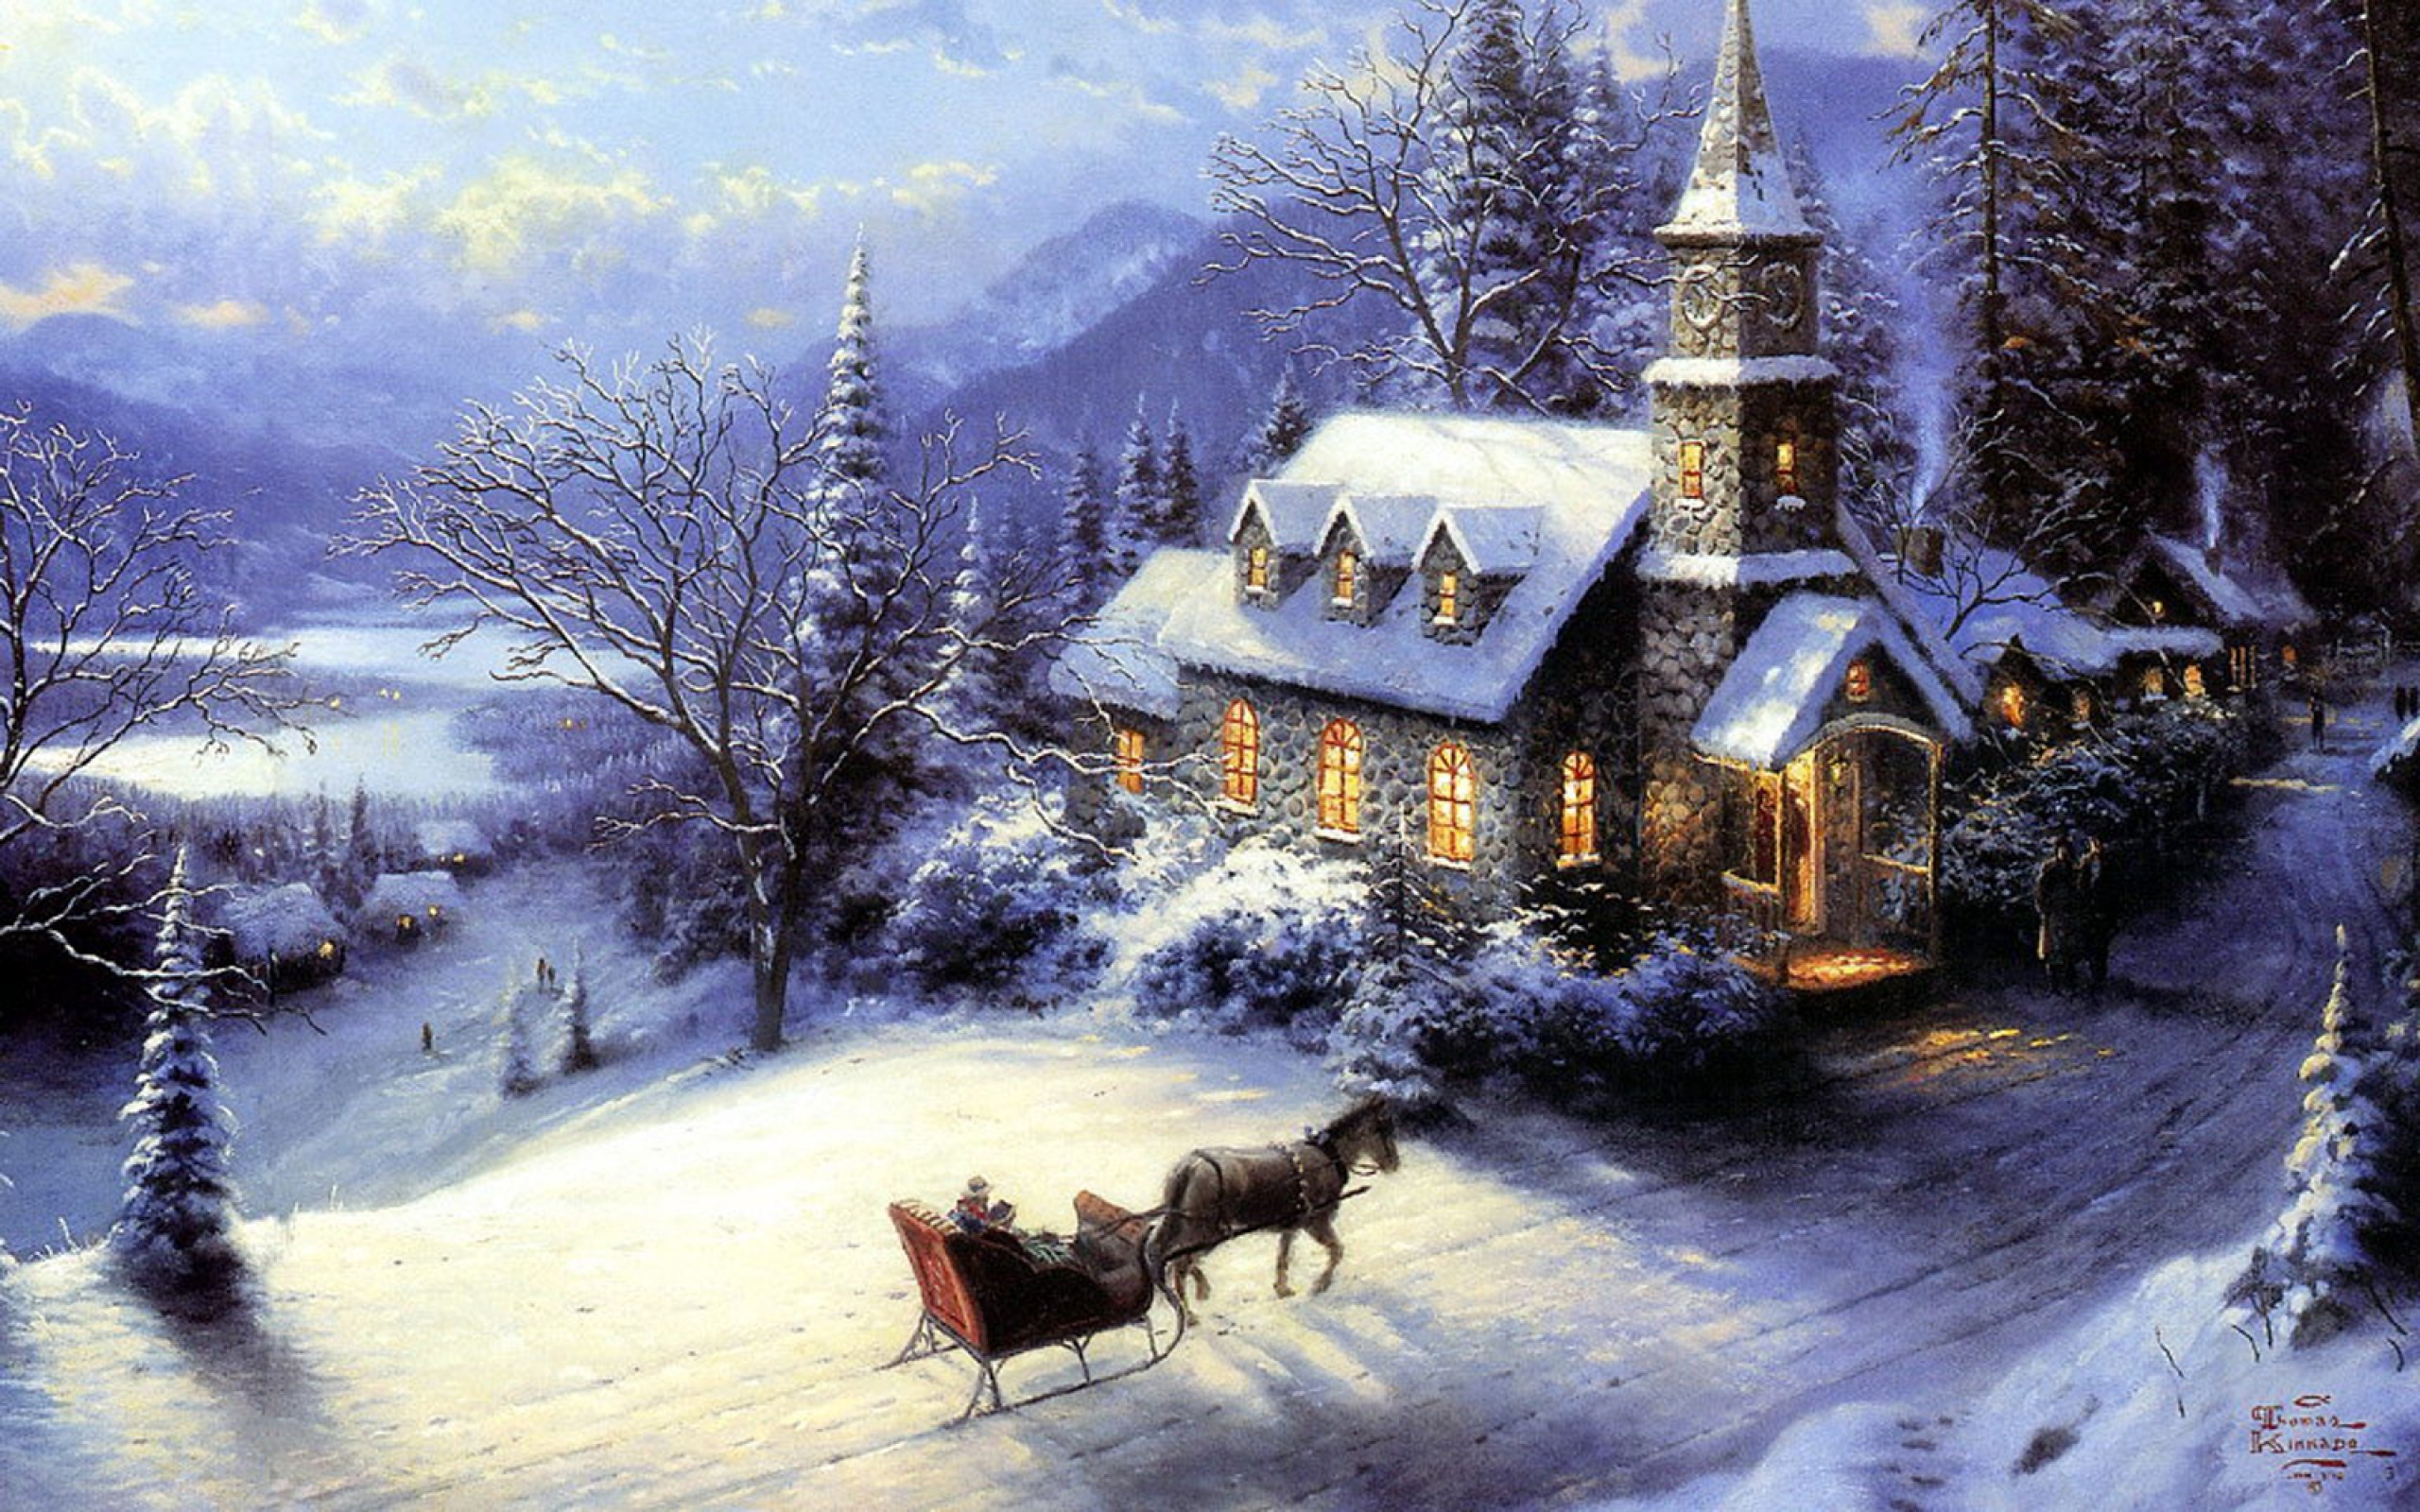 House Winter Snow Sledge Card New year Christmas wallpaper | 2560x1600 |  728845 | WallpaperUP